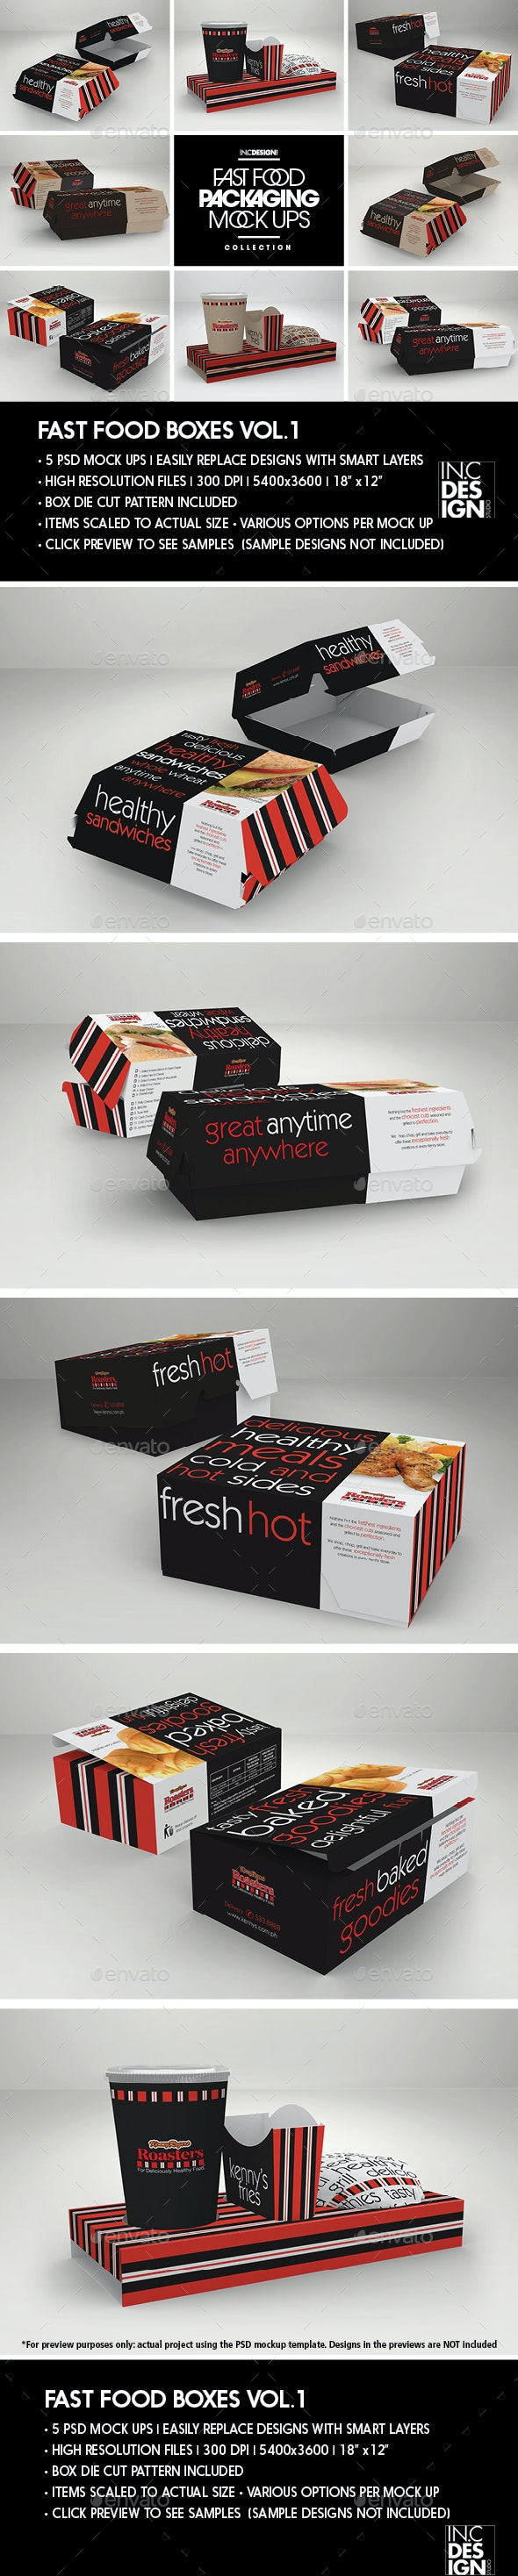 Fast Food Boxes Vol.1:Take Out Packaging Mock Ups - Food and Drink Packaging